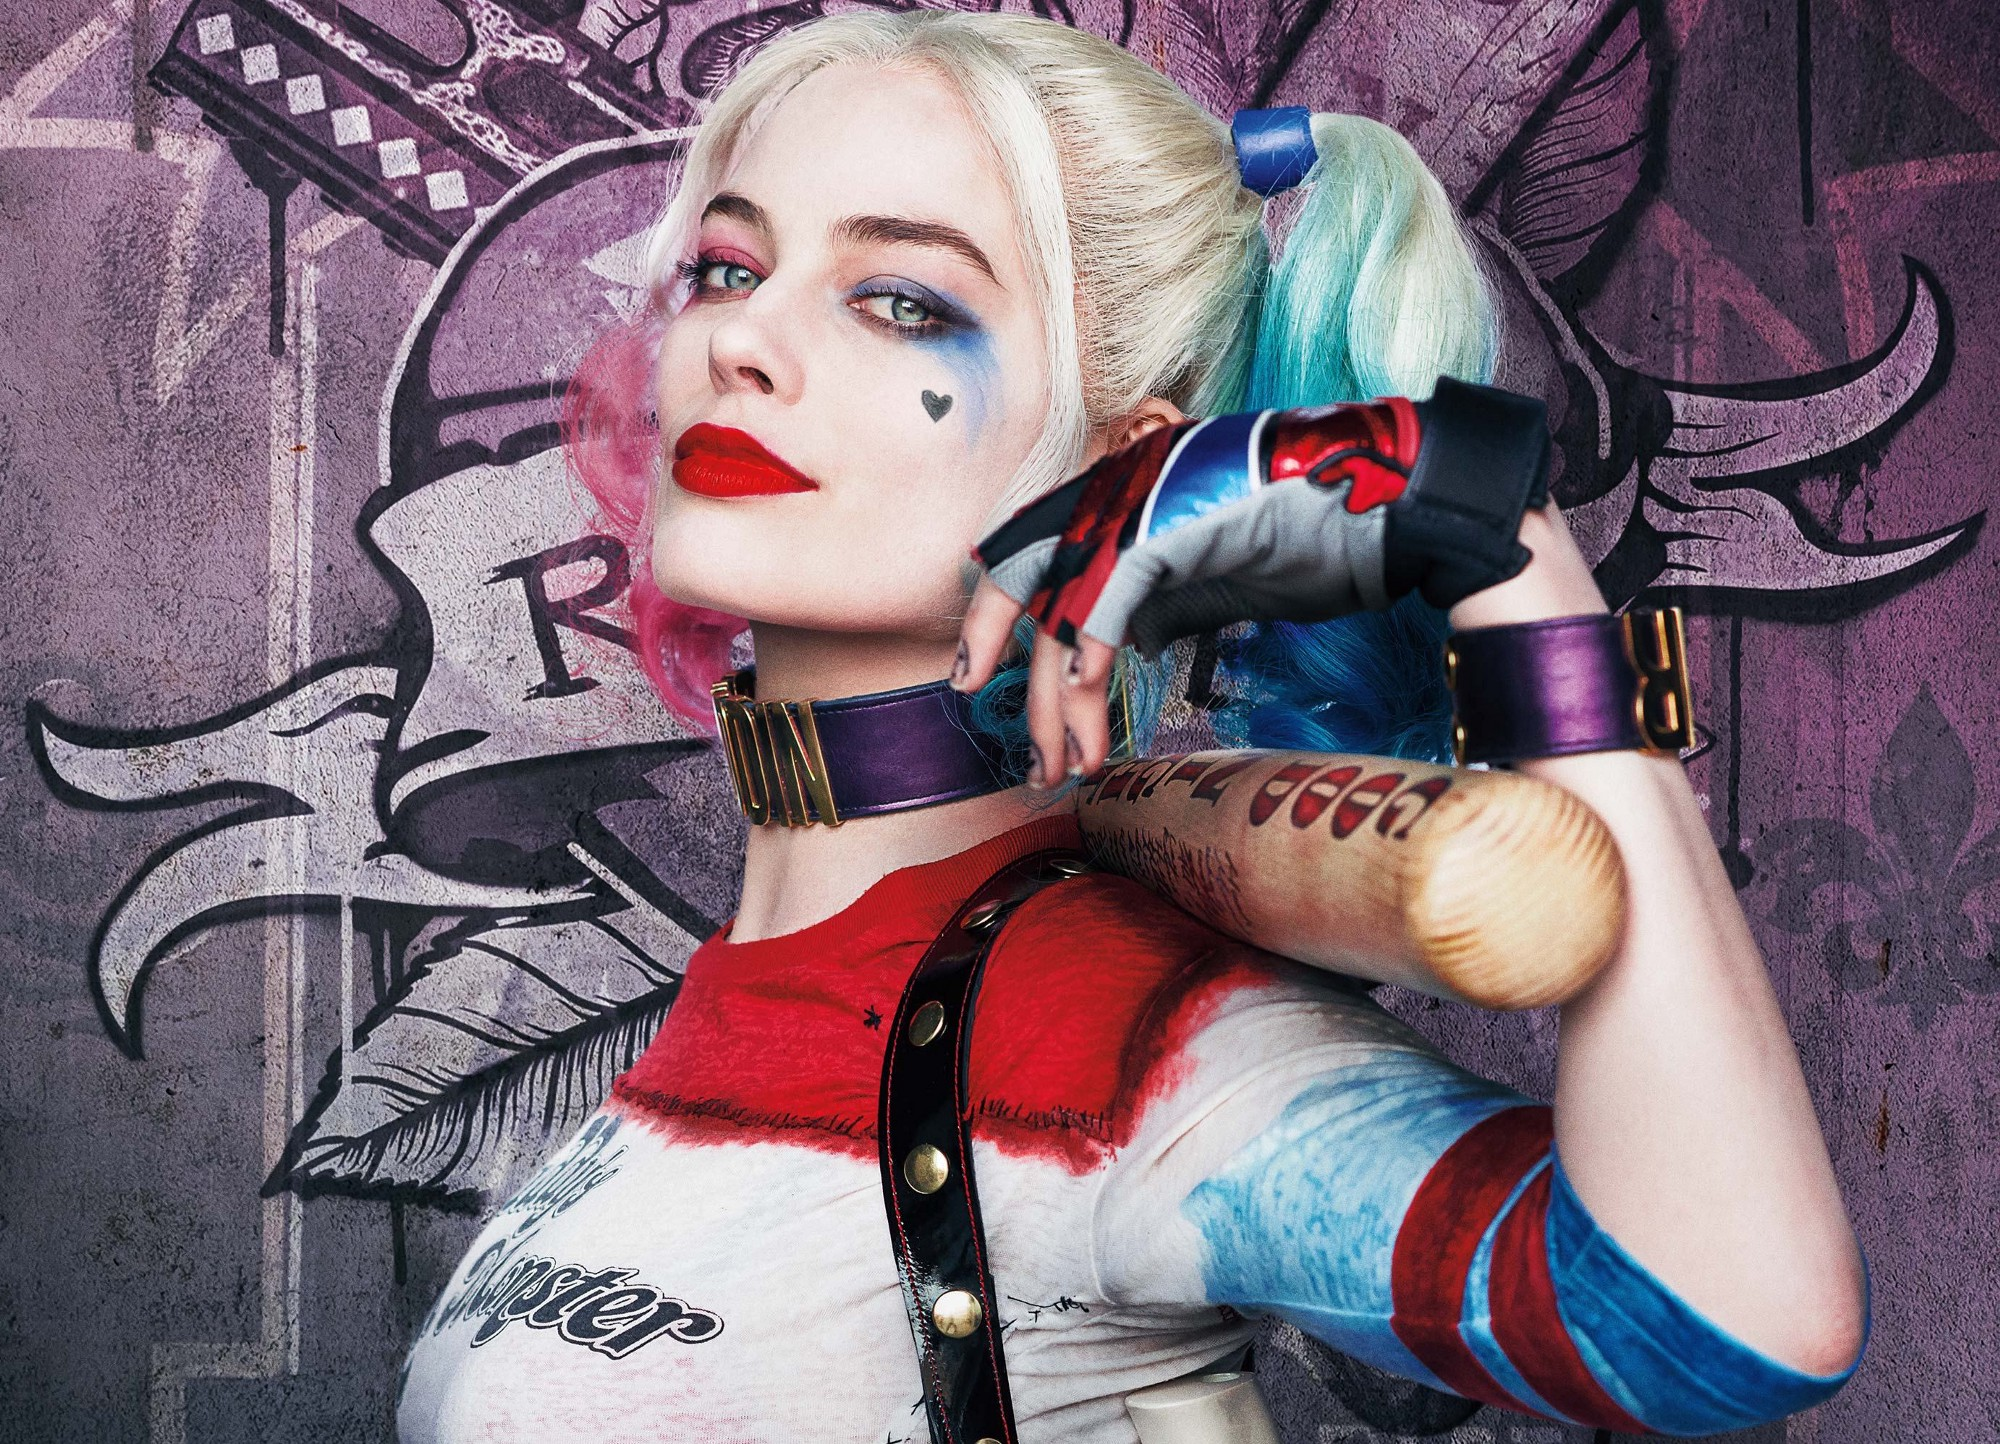 Harley quin galleries 87